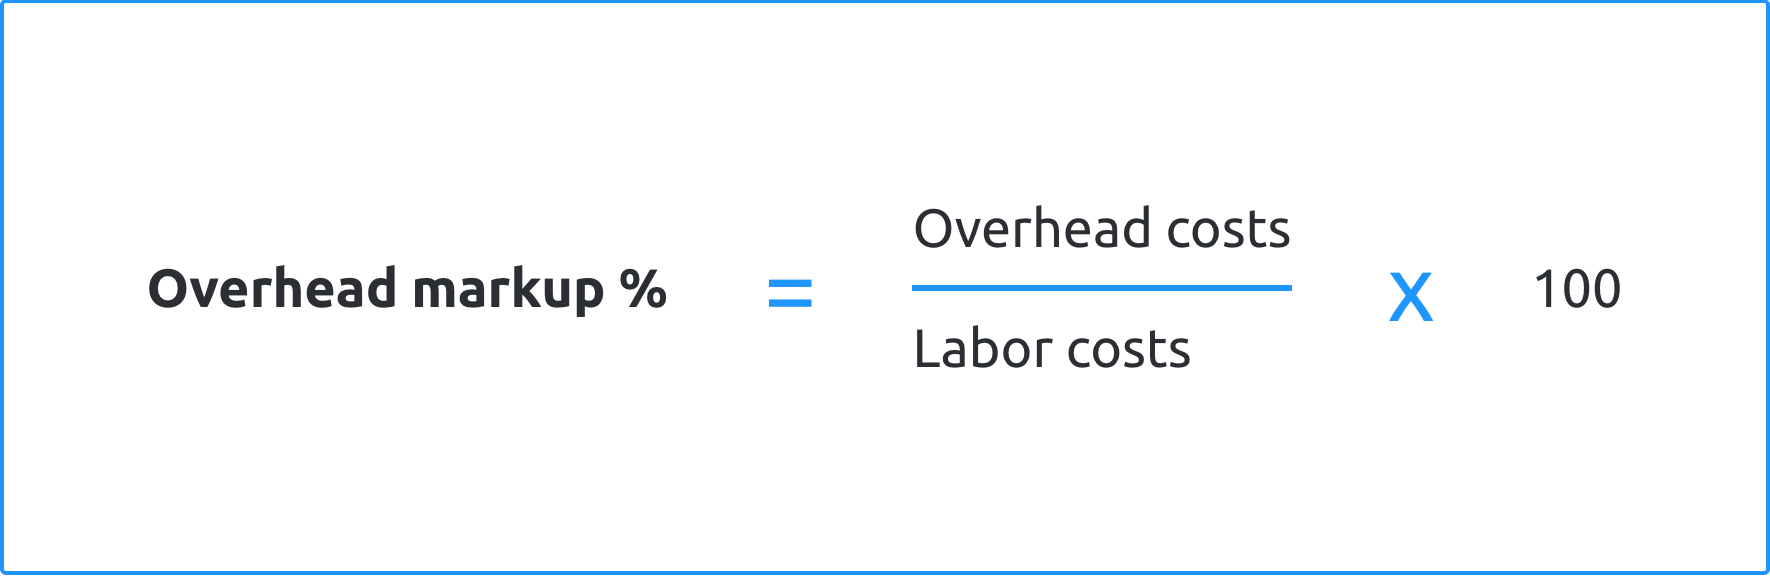 calculate construction overhead by labor cost formula